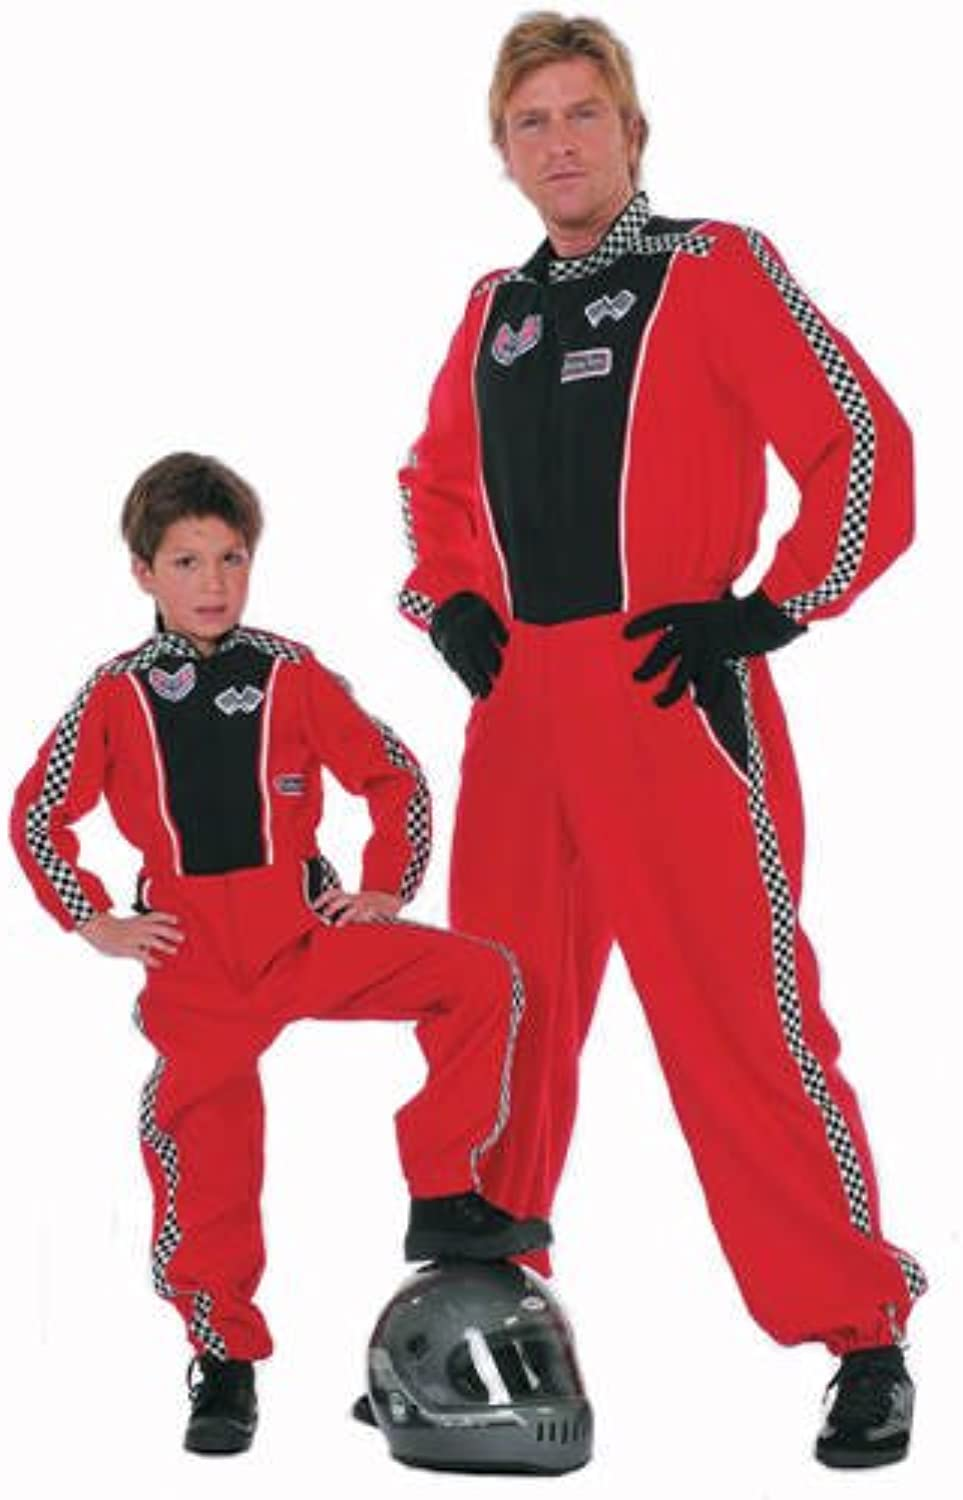 Racing Driver Mens Costume, size XL